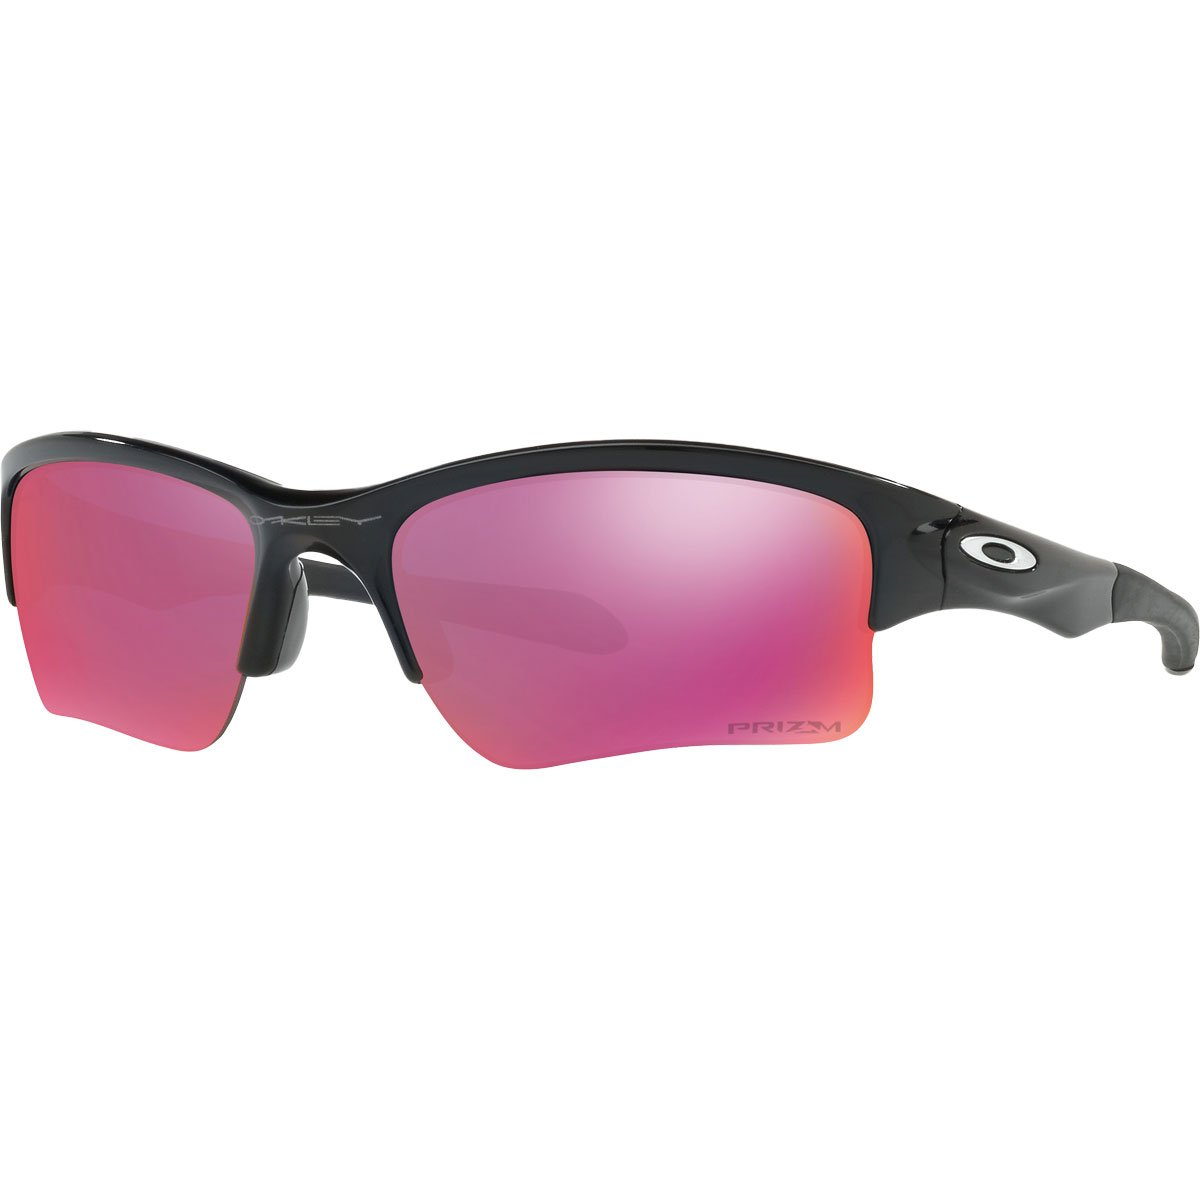 Oakley Boys Quarter Jacket (Youth Fit) Prizm Sunglasses, Polished Black/Prizm Field, One Size by Oakley